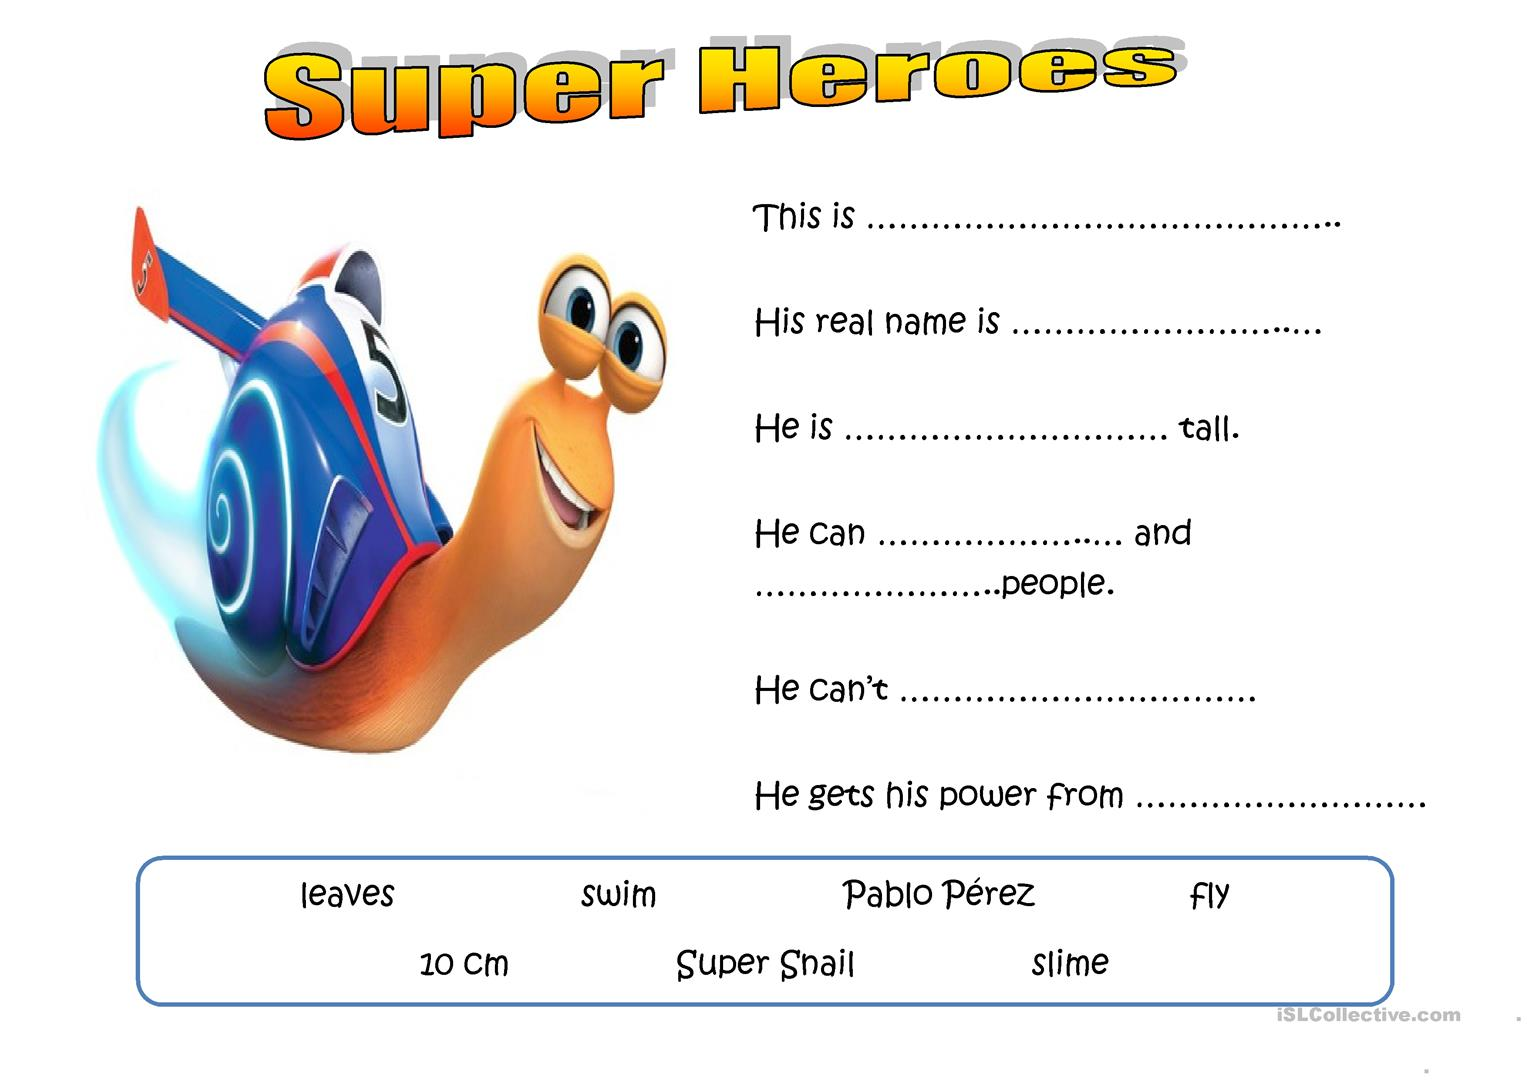 Invent A Super Hero Worksheet